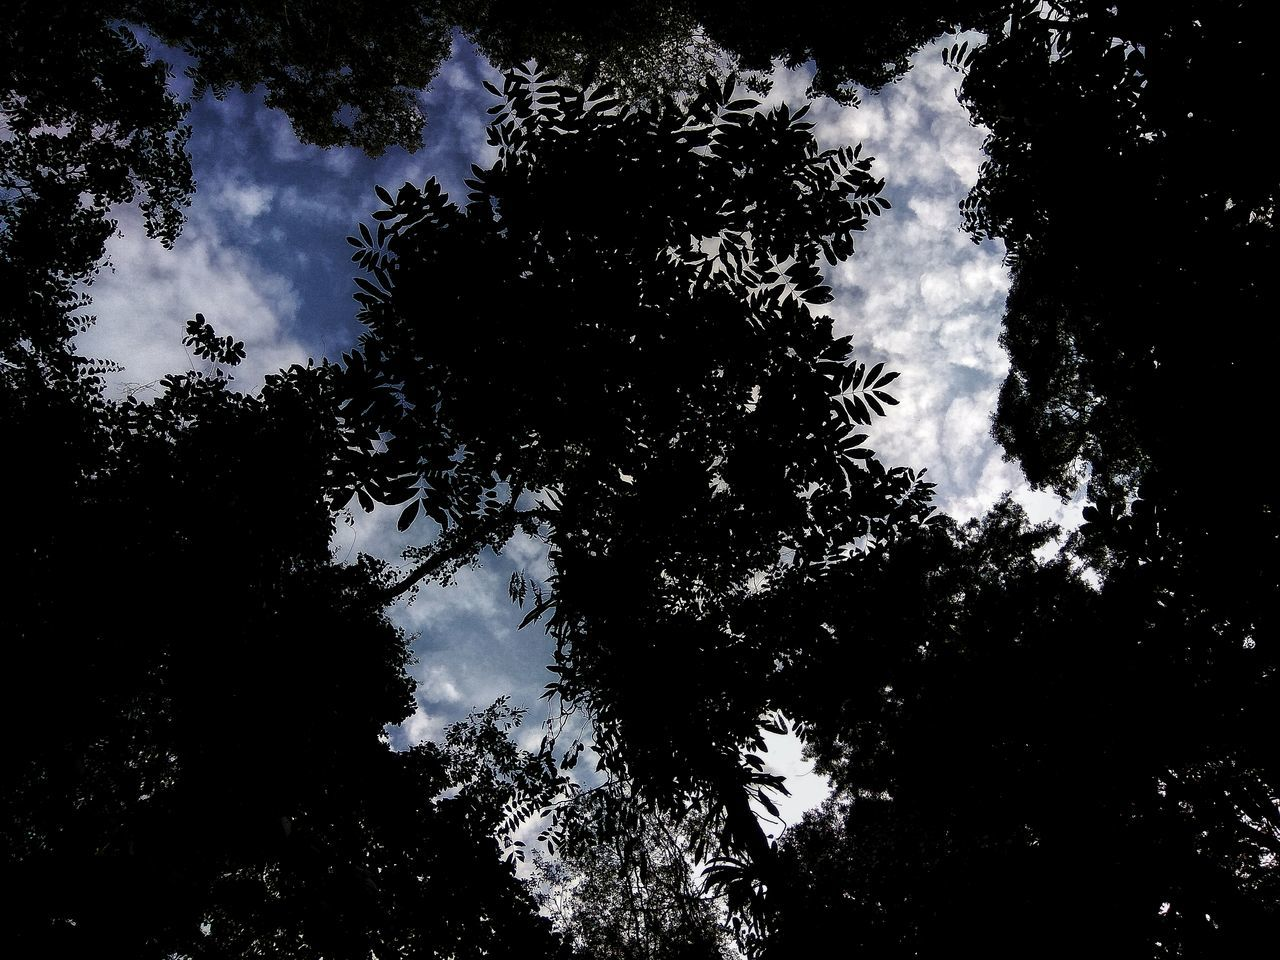 Nature Beauty In Nature No People Silhouette Close-up Outdoors Branch Backgrounds Tree Sky Night Galaxy Dogs Dogs Of EyeEm Dogslife Dogstagram Dogsofinstagram Dogs Life Pet Petal Wild Animals Wild Animals Up Close Wild Animals Close Up Wild Animals Cheetah Beautiful Landscape Wild Animals Love Her